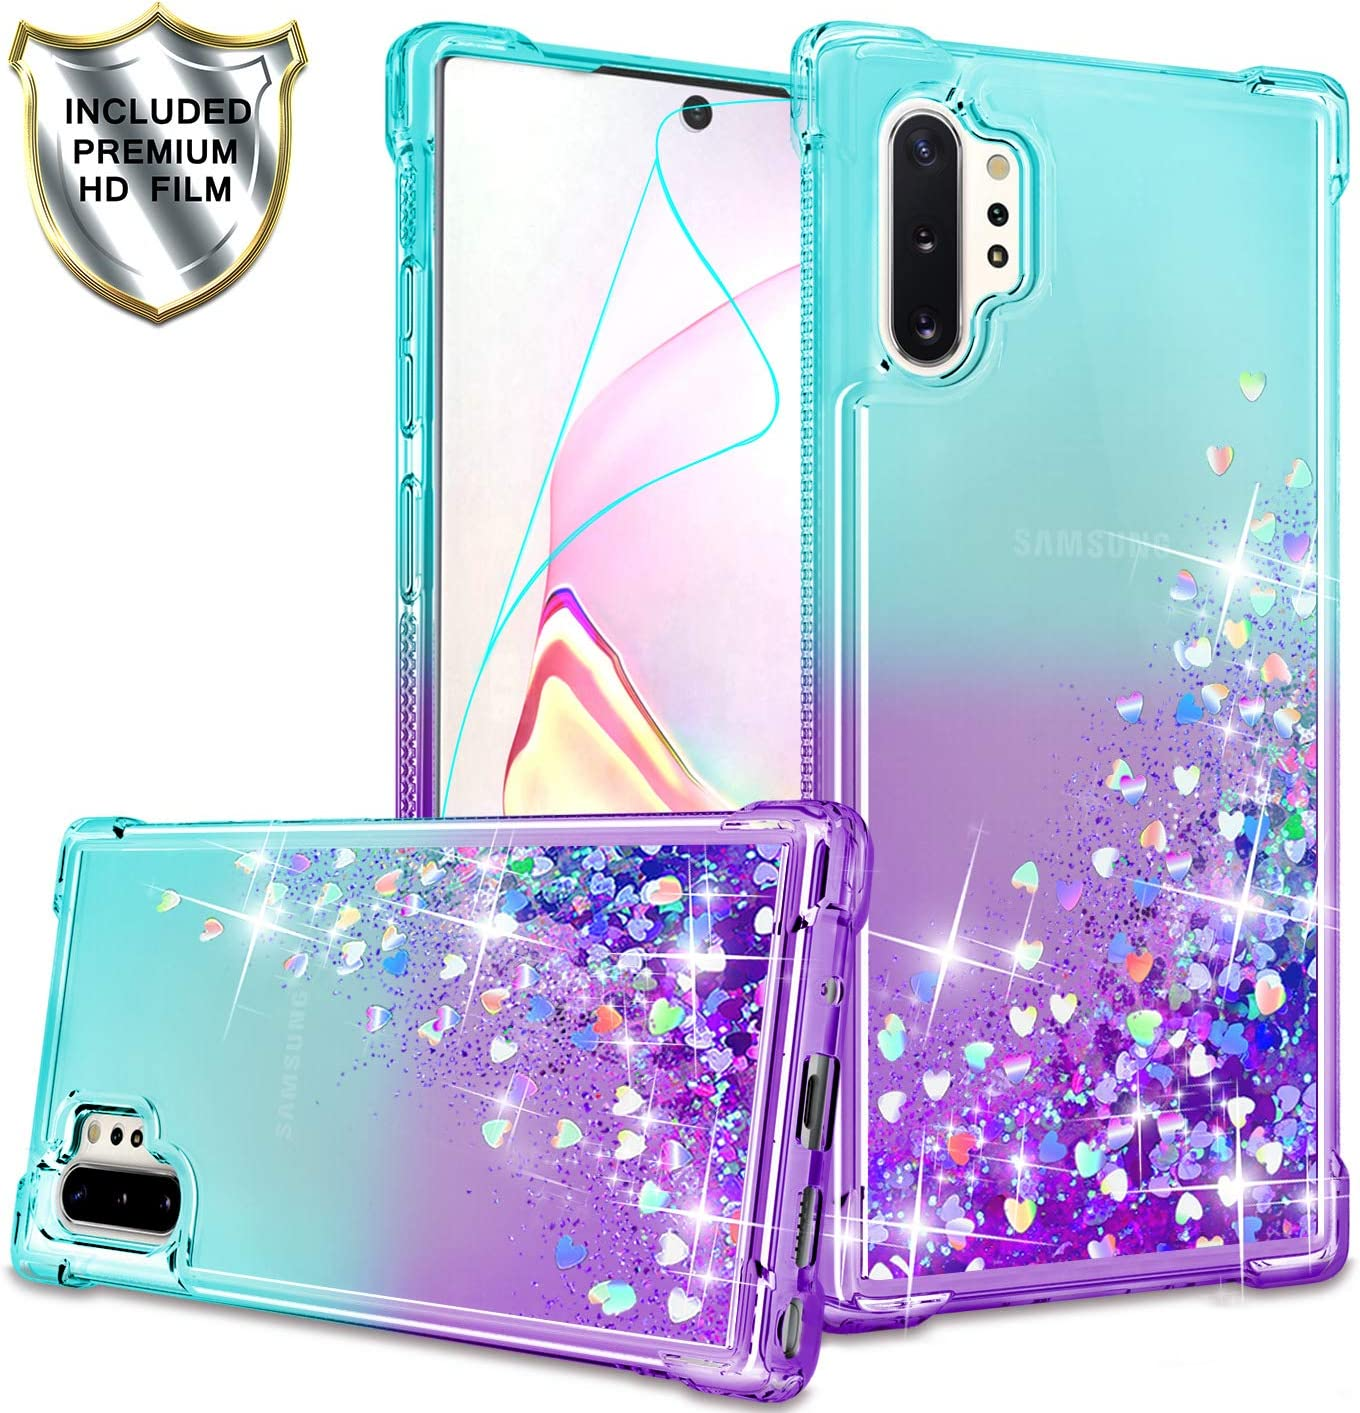 Gritup Galaxy Note 10 Plus Case, Galaxy Note 10+ 5G Case with HD Screen Protector for Girls Women, Cute Clear Gradient Glitter Liquid TPU Slim Phone Case for Samsung Galaxy Note 10 Plus Teal/Purple